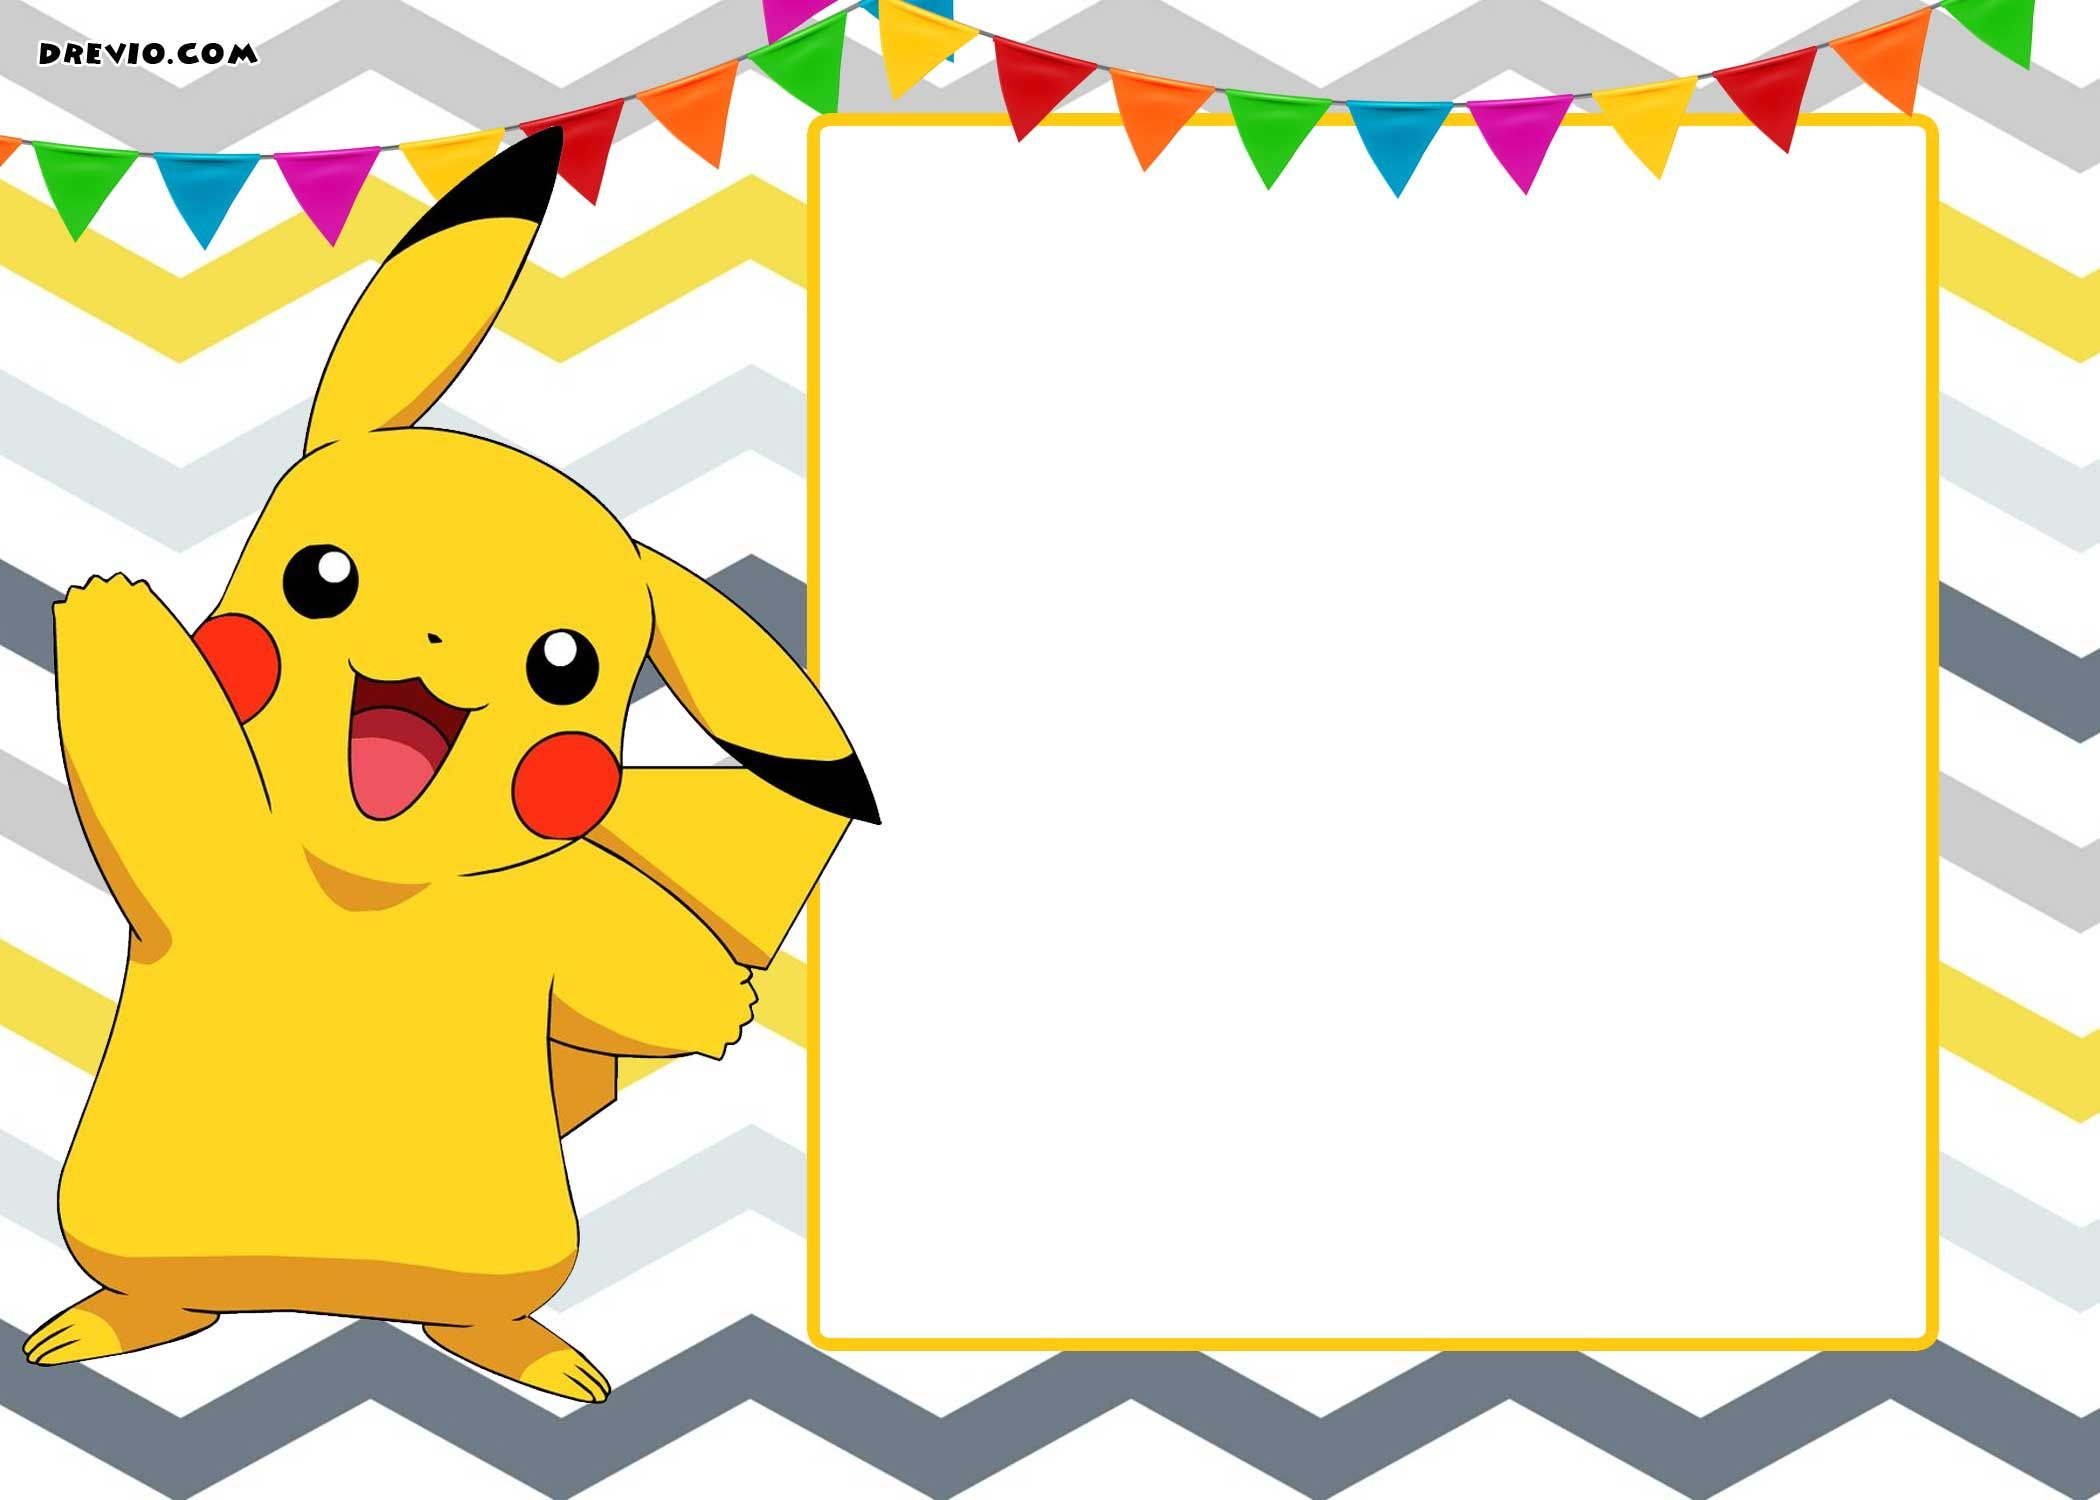 photograph about Free Printable Pokemon Invitations named Free of charge Printable Pokemon Invitation Templates Birthday Social gathering